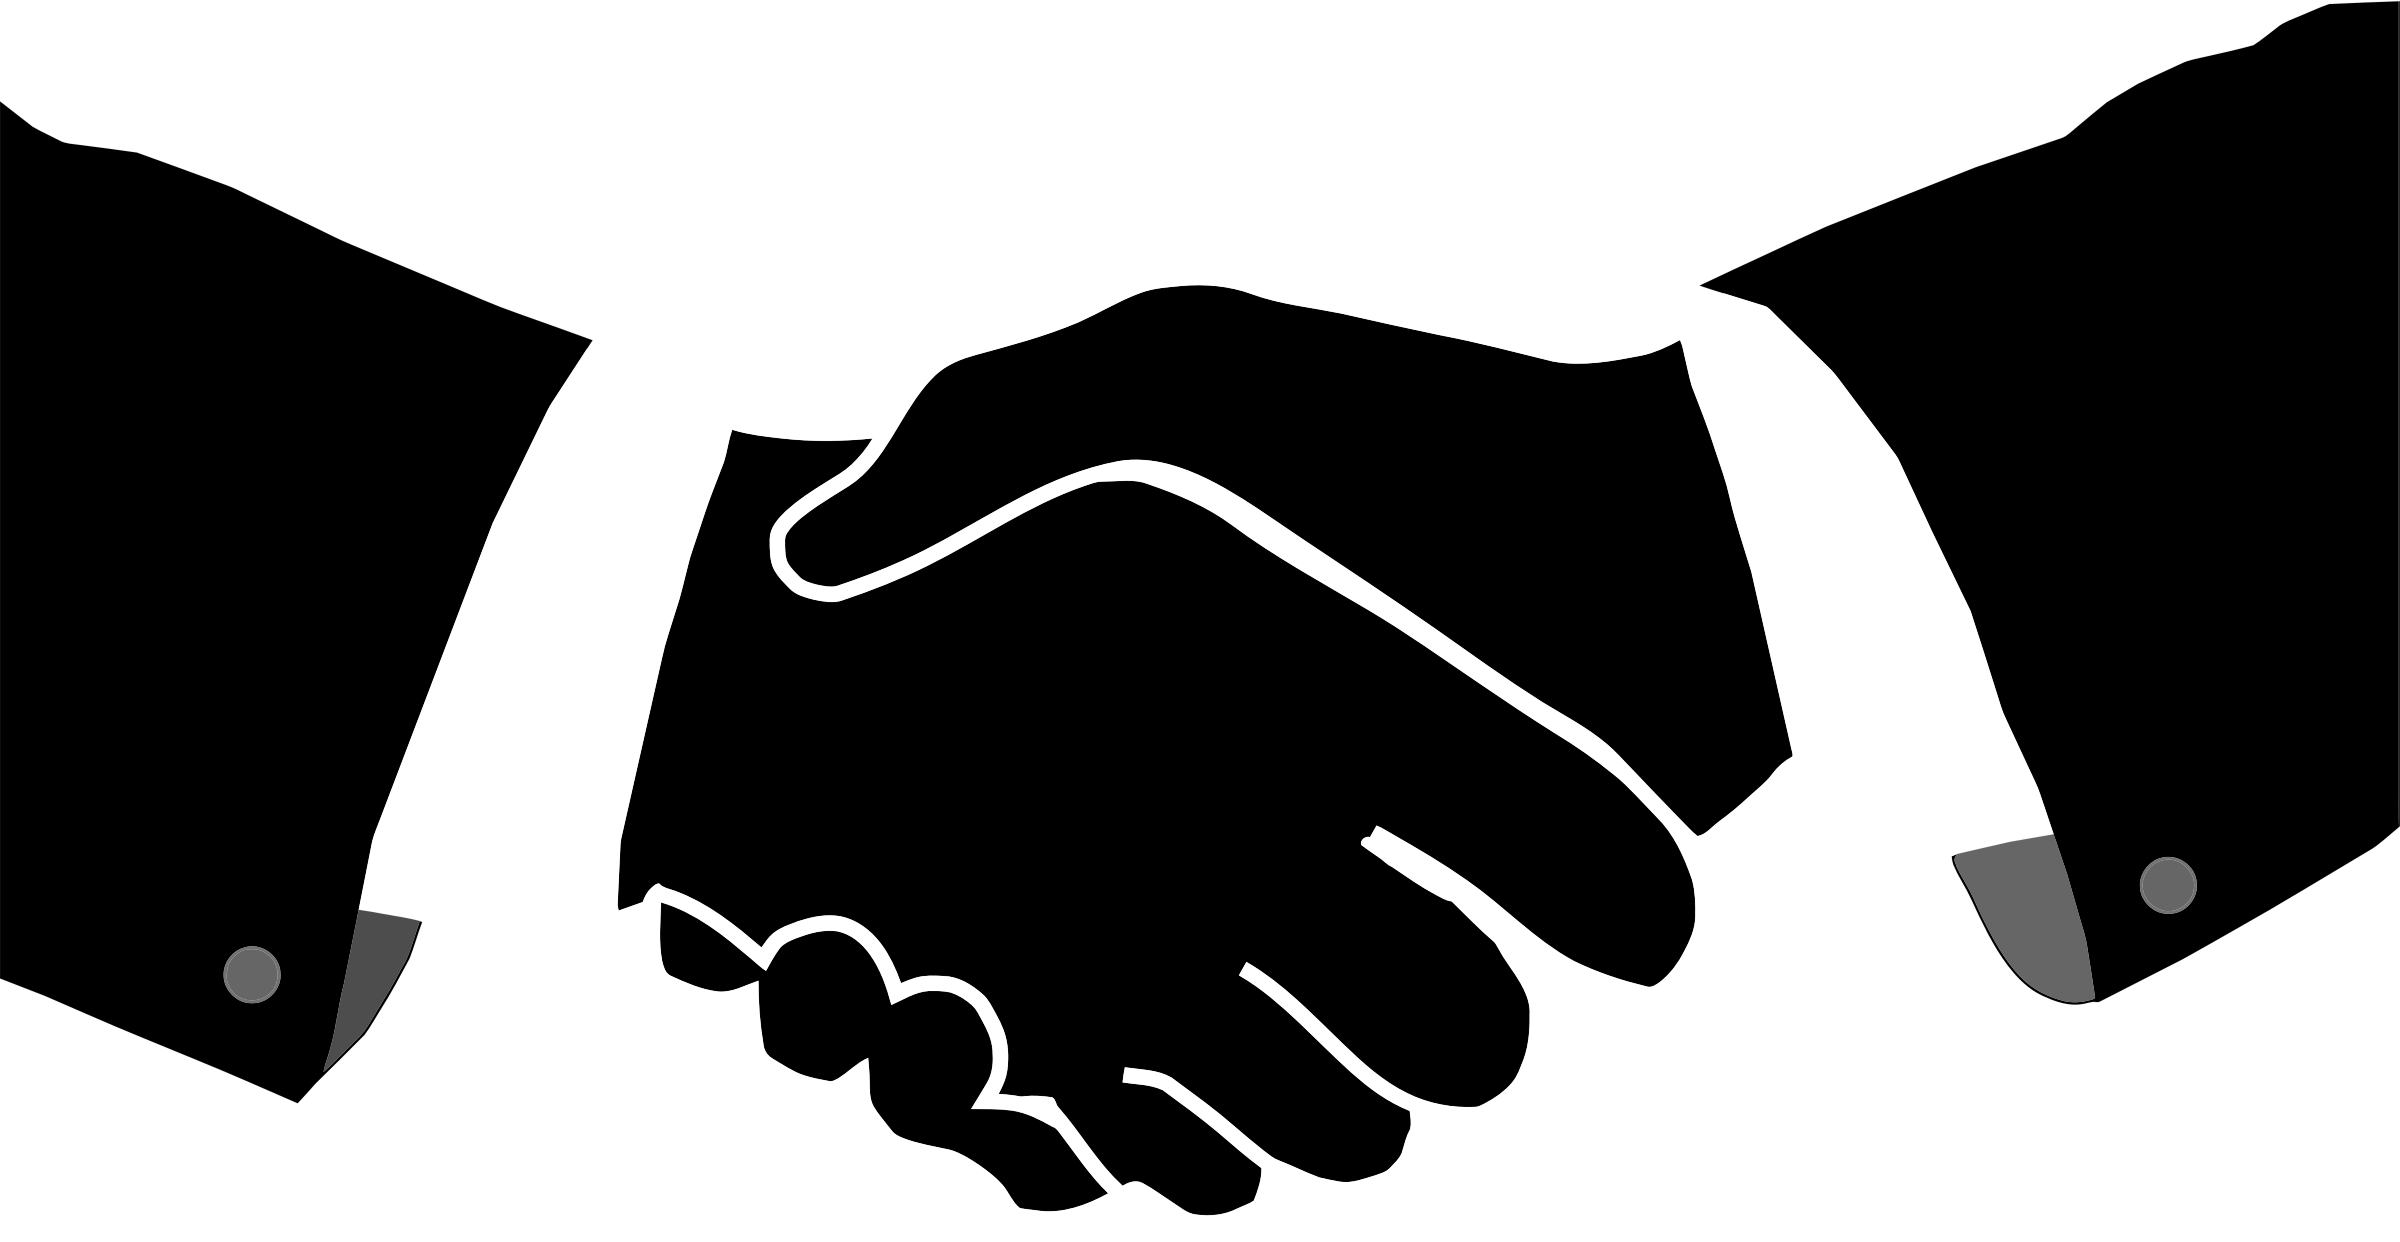 https://openclipart.org/image/2400px/svg_to_png/222121/Handshake.png